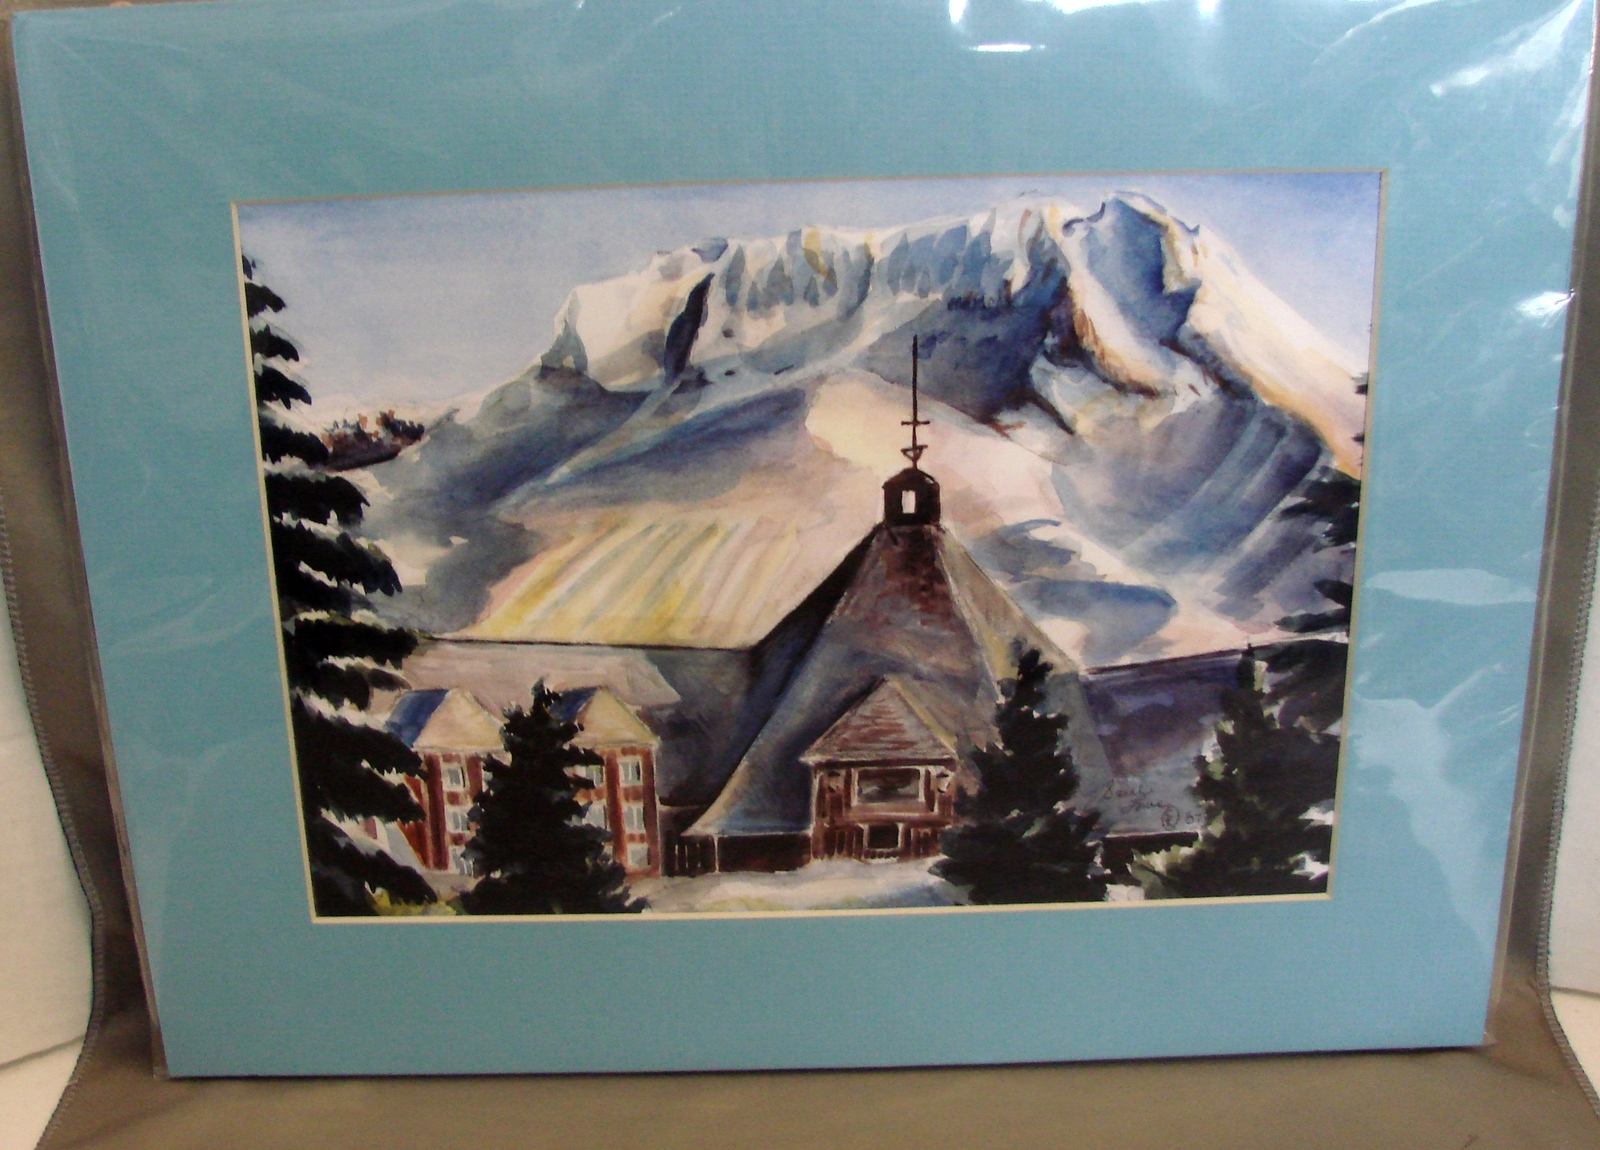 Primary image for Timberline Lodge, Mt Hood (8 x 10 print matted to 11 x 14 ) by Sarah Lowe